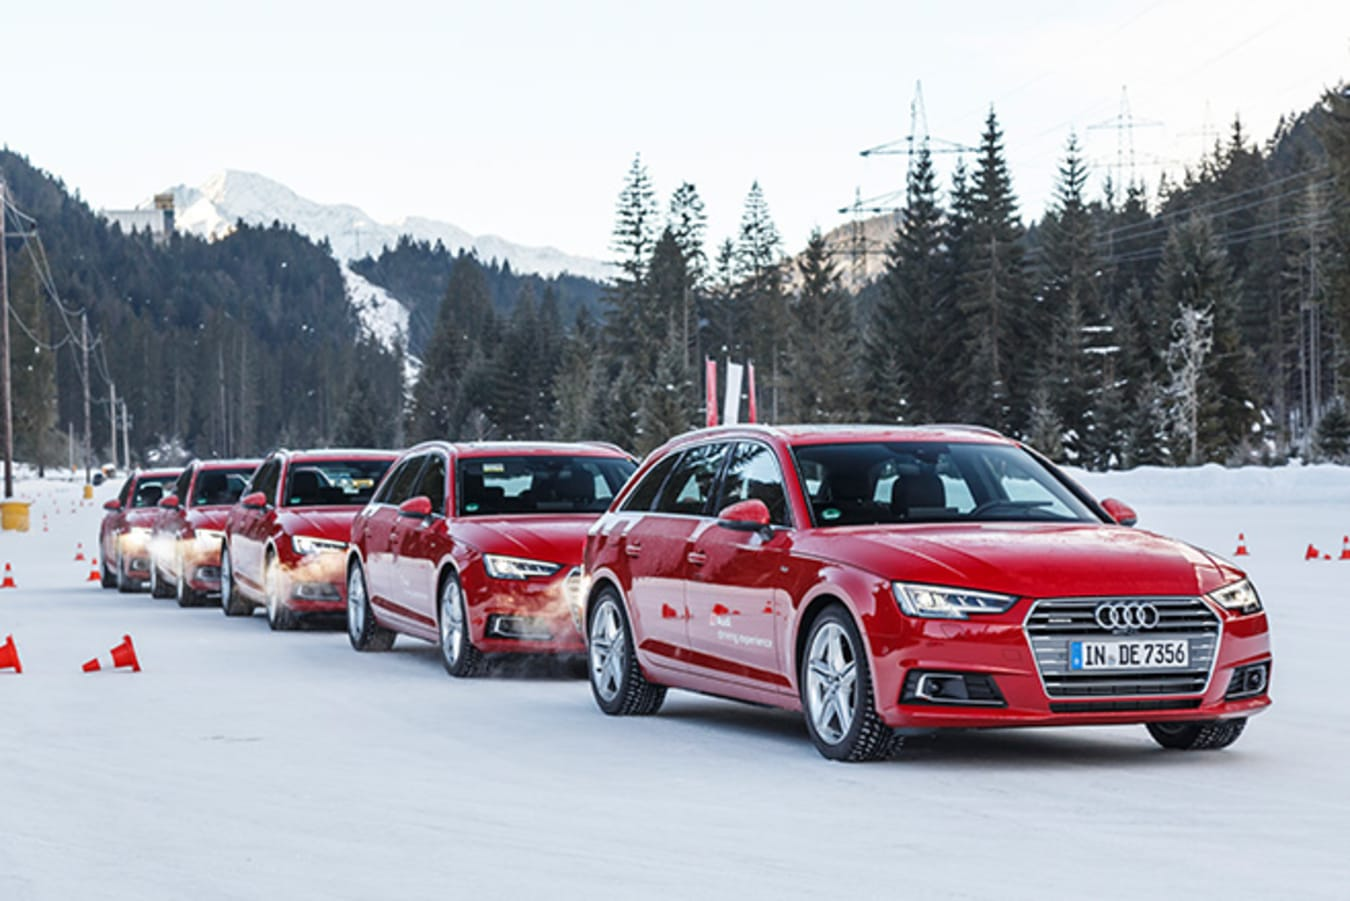 Audi Driving Experience - Red Audi lined up